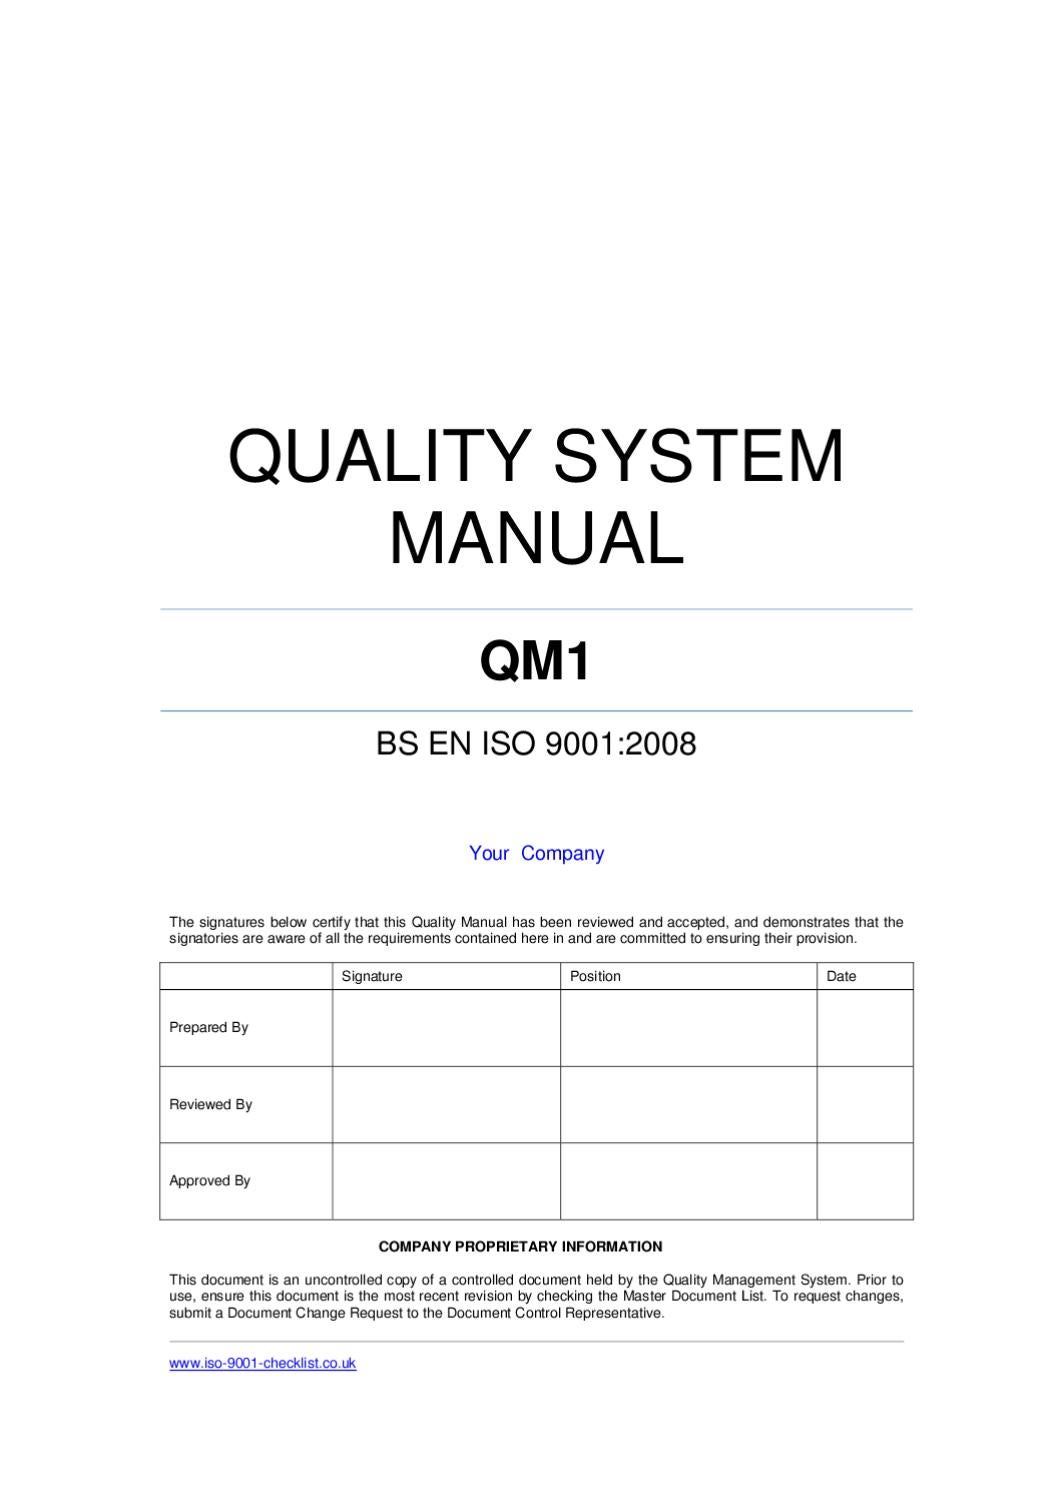 quality manual template example by iso 9001 checklist issuu. Black Bedroom Furniture Sets. Home Design Ideas